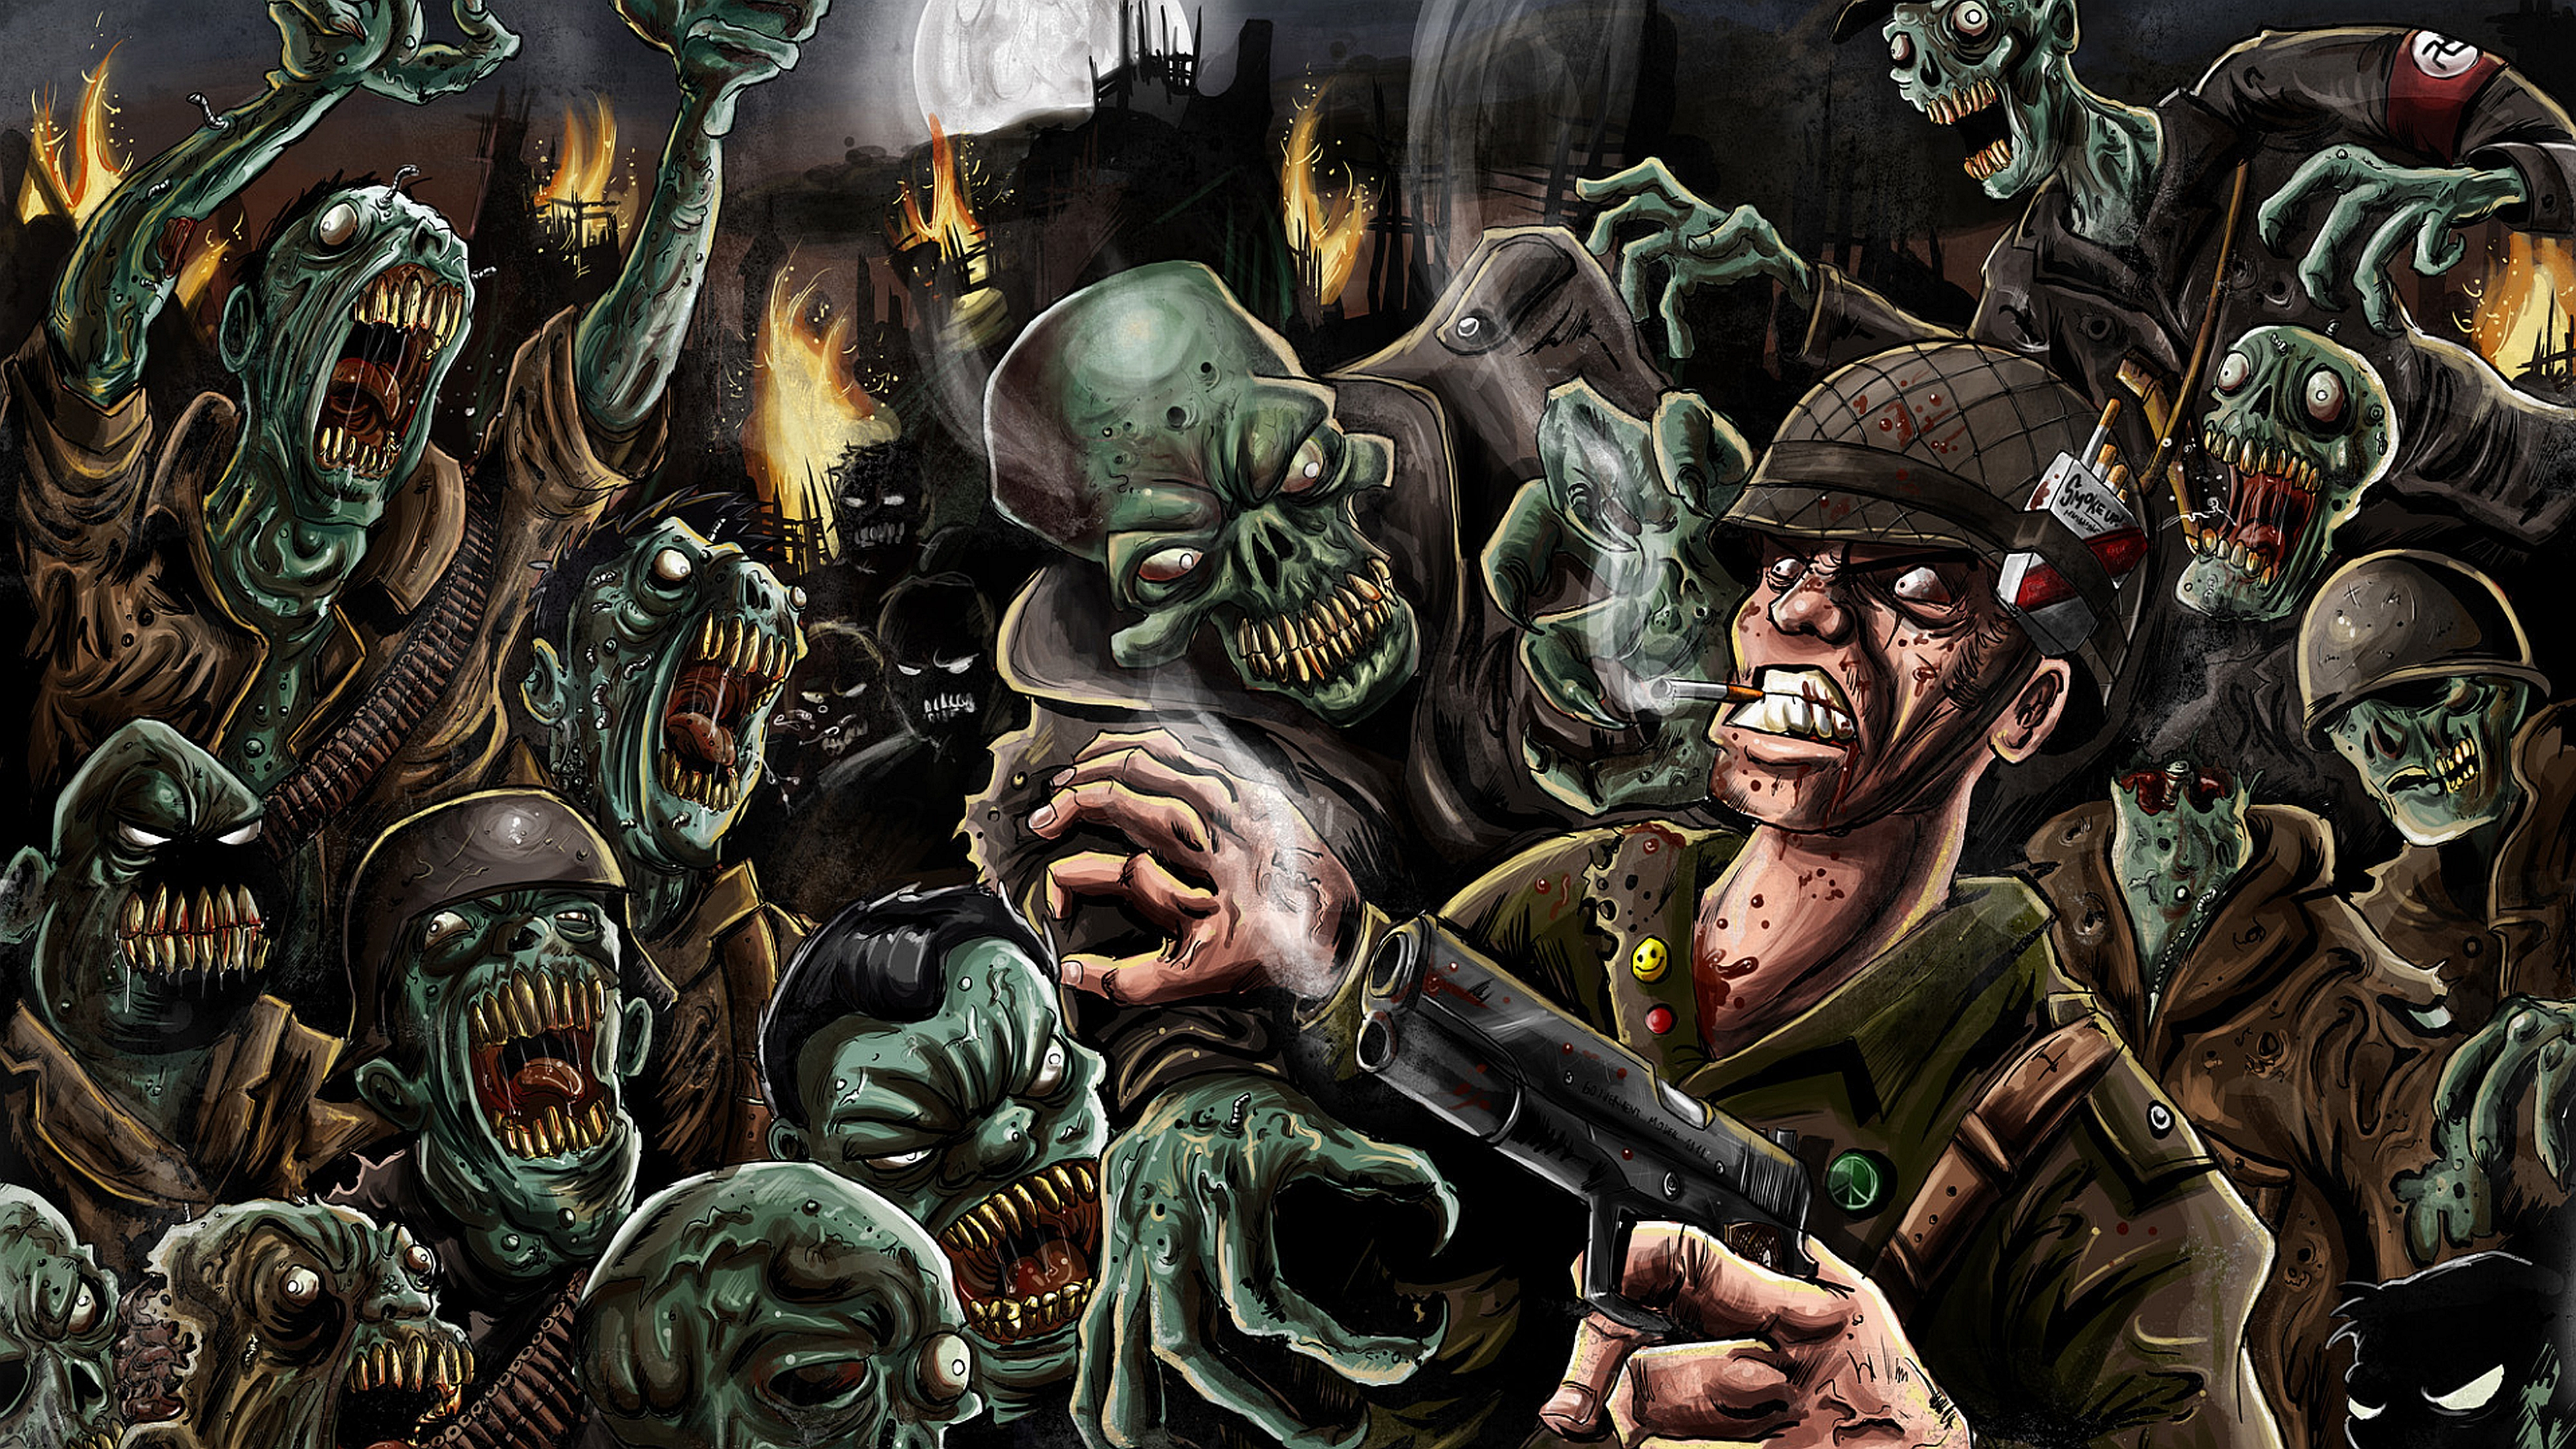 Wallpapers For Zombie Wallpaper Hd Cod Zombies 326611 Hd Wallpaper Backgrounds Download